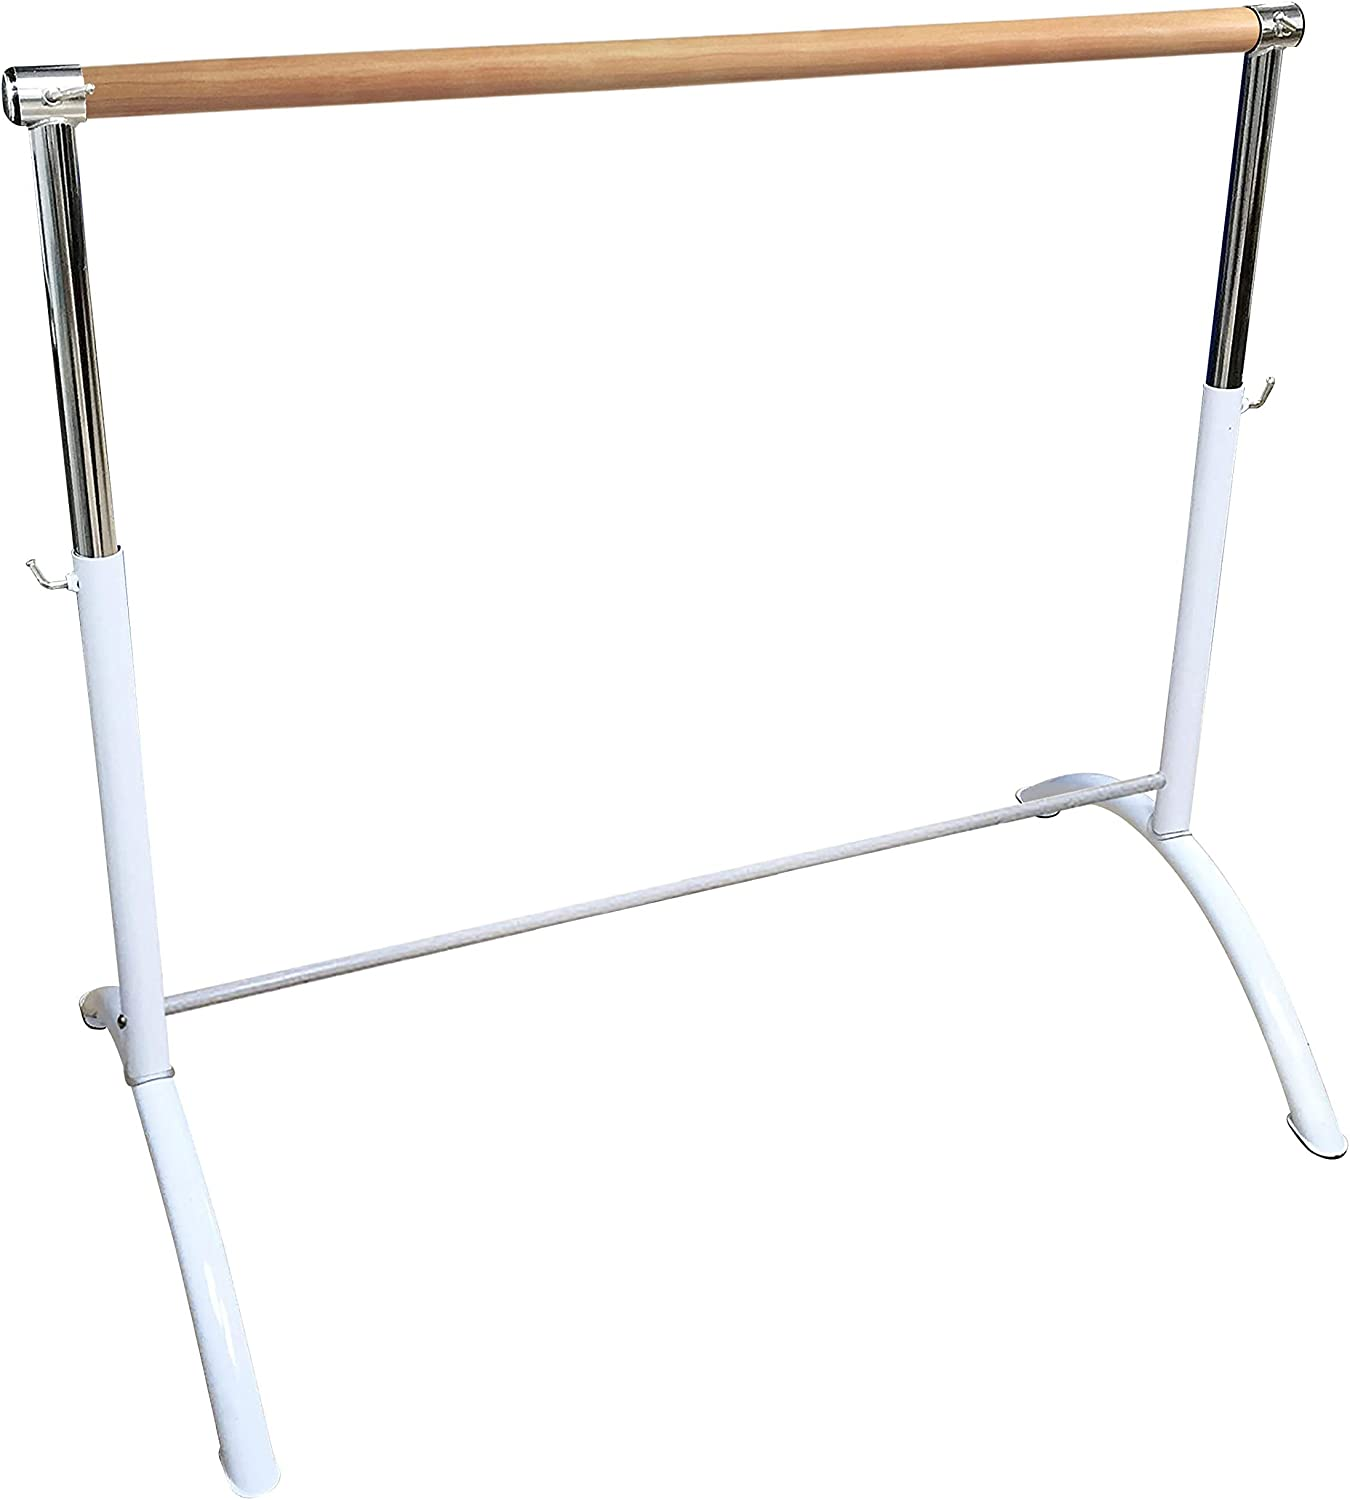 Ballet Barre Portable for Home I Adults & Children, Lightweight, Adjustable, White Single Ballet Bar, Freestanding Barre Equipment for Home - Perfect for Exercise, Balance, Building Core & Flexibility